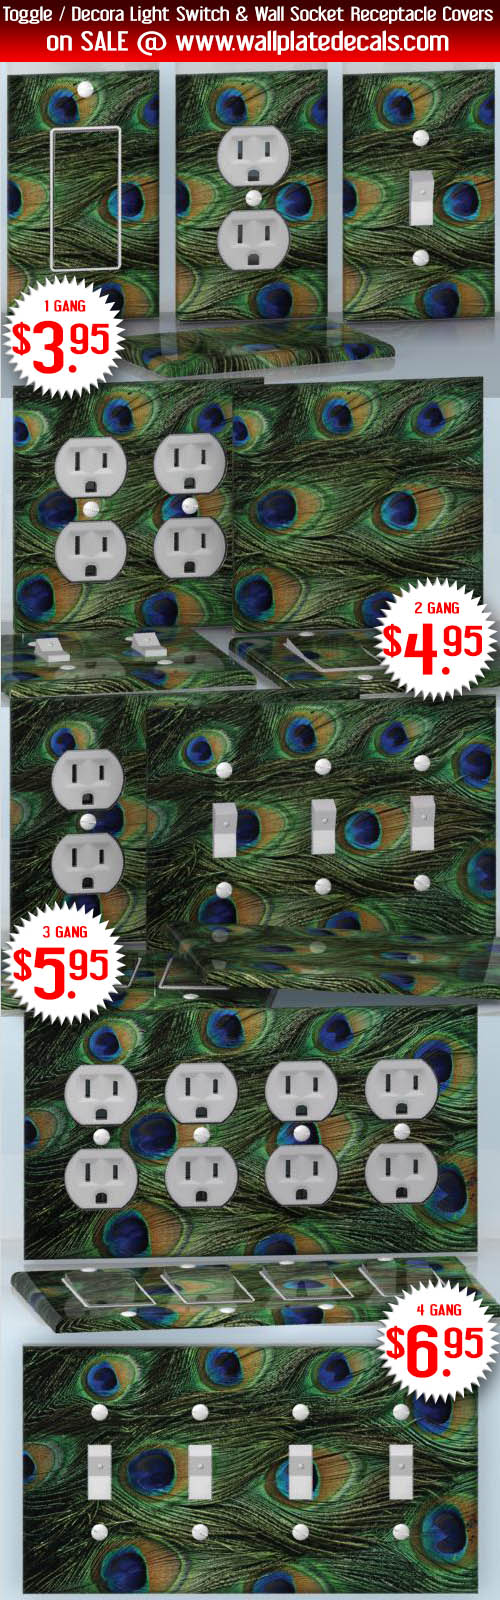 Diy 3 Gang Wall Socket Duplex Receptacle Decal Skin Wrap Sticker Plates On Wall Wall Plate Cover Peacock Pattern